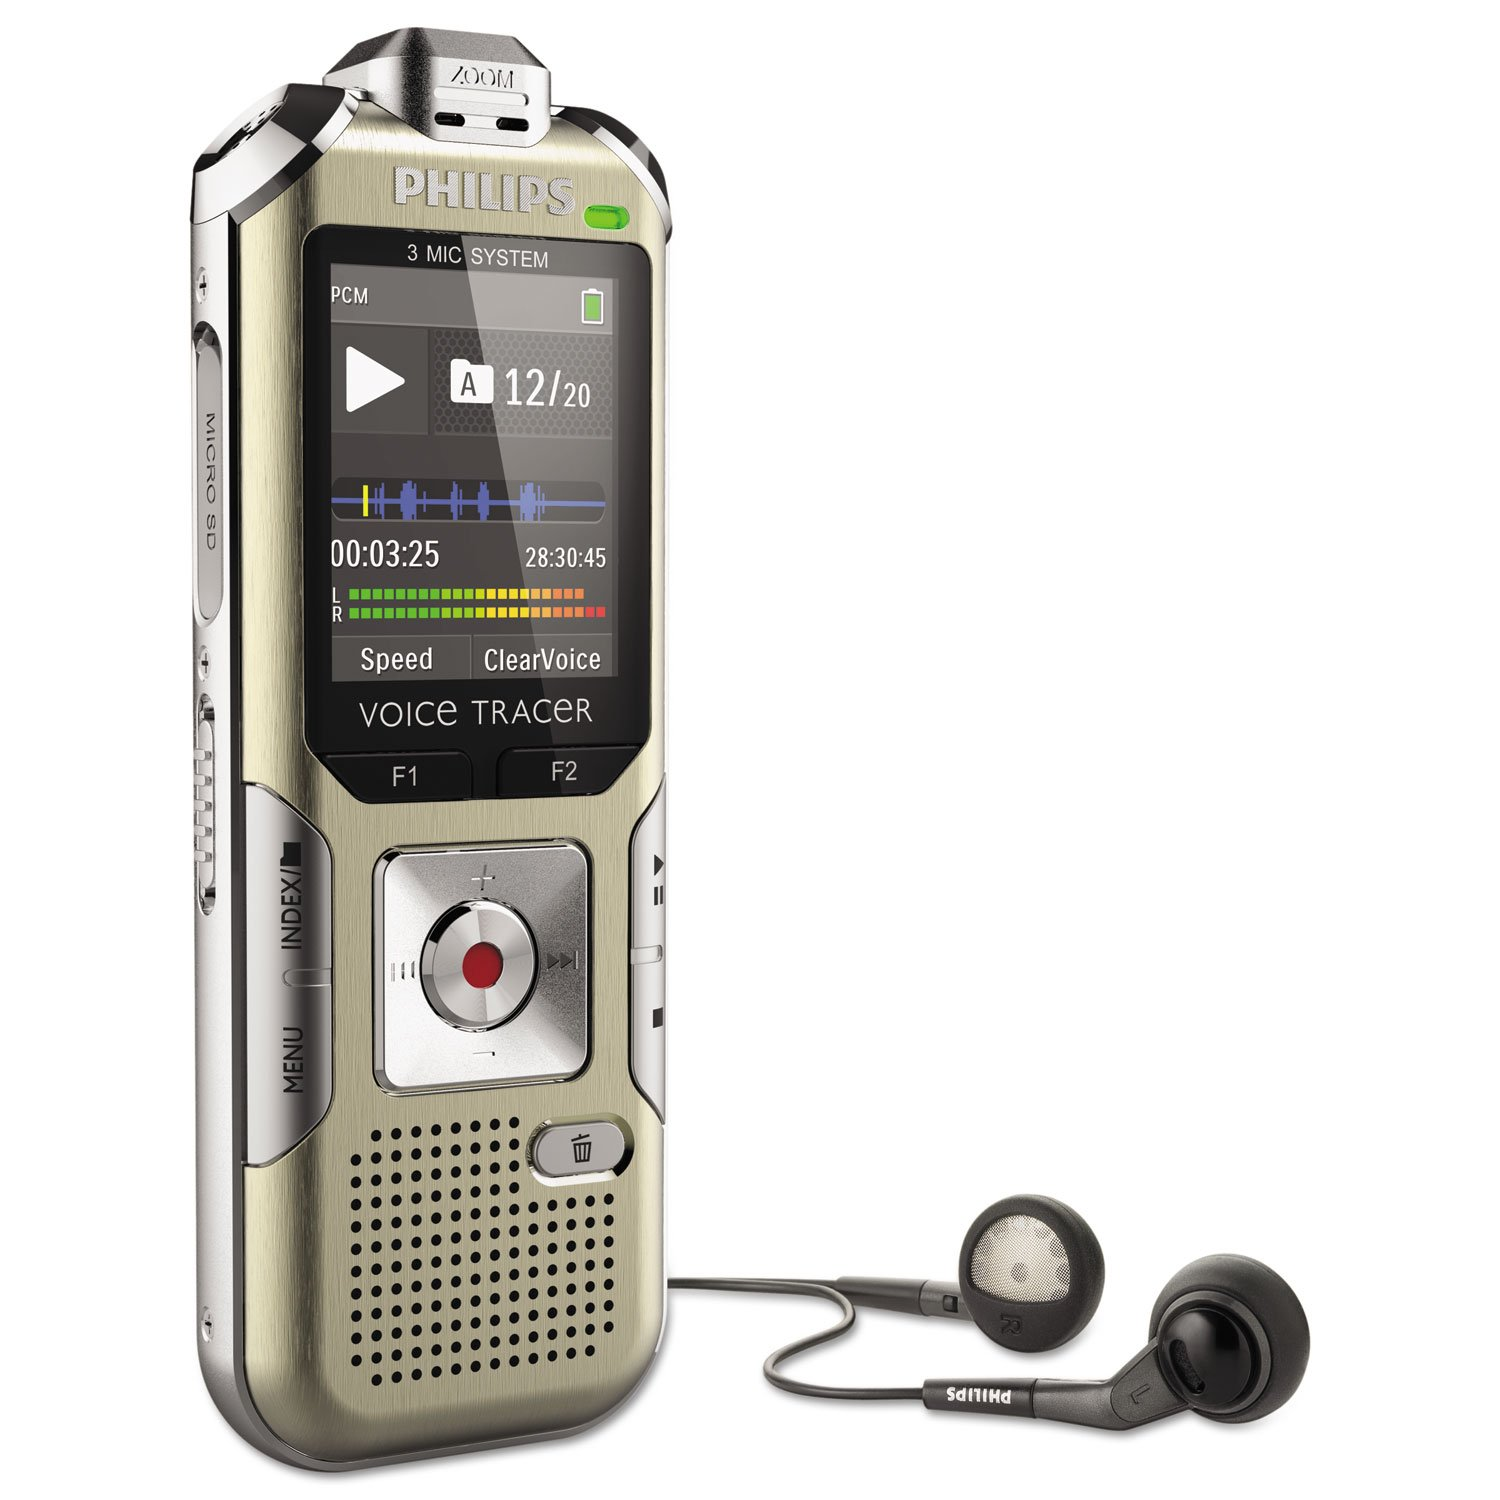 Philips DVT6500 Voice Tracer 6500 Digital Recorder, 4 GB Memory, Gold